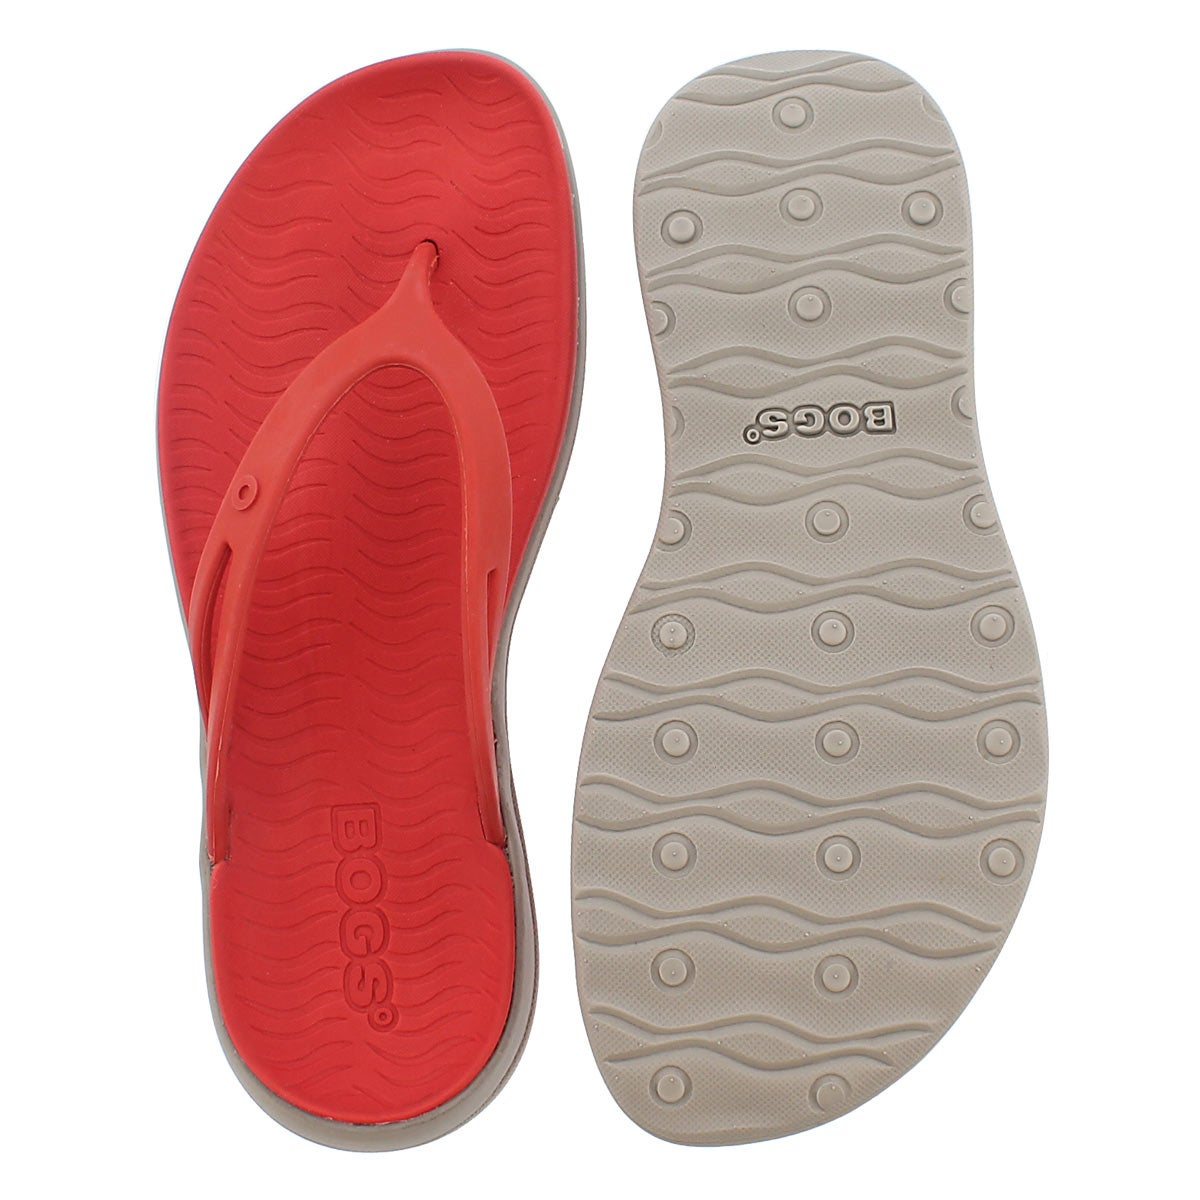 Lds Gracie red multi wtpf flip flop